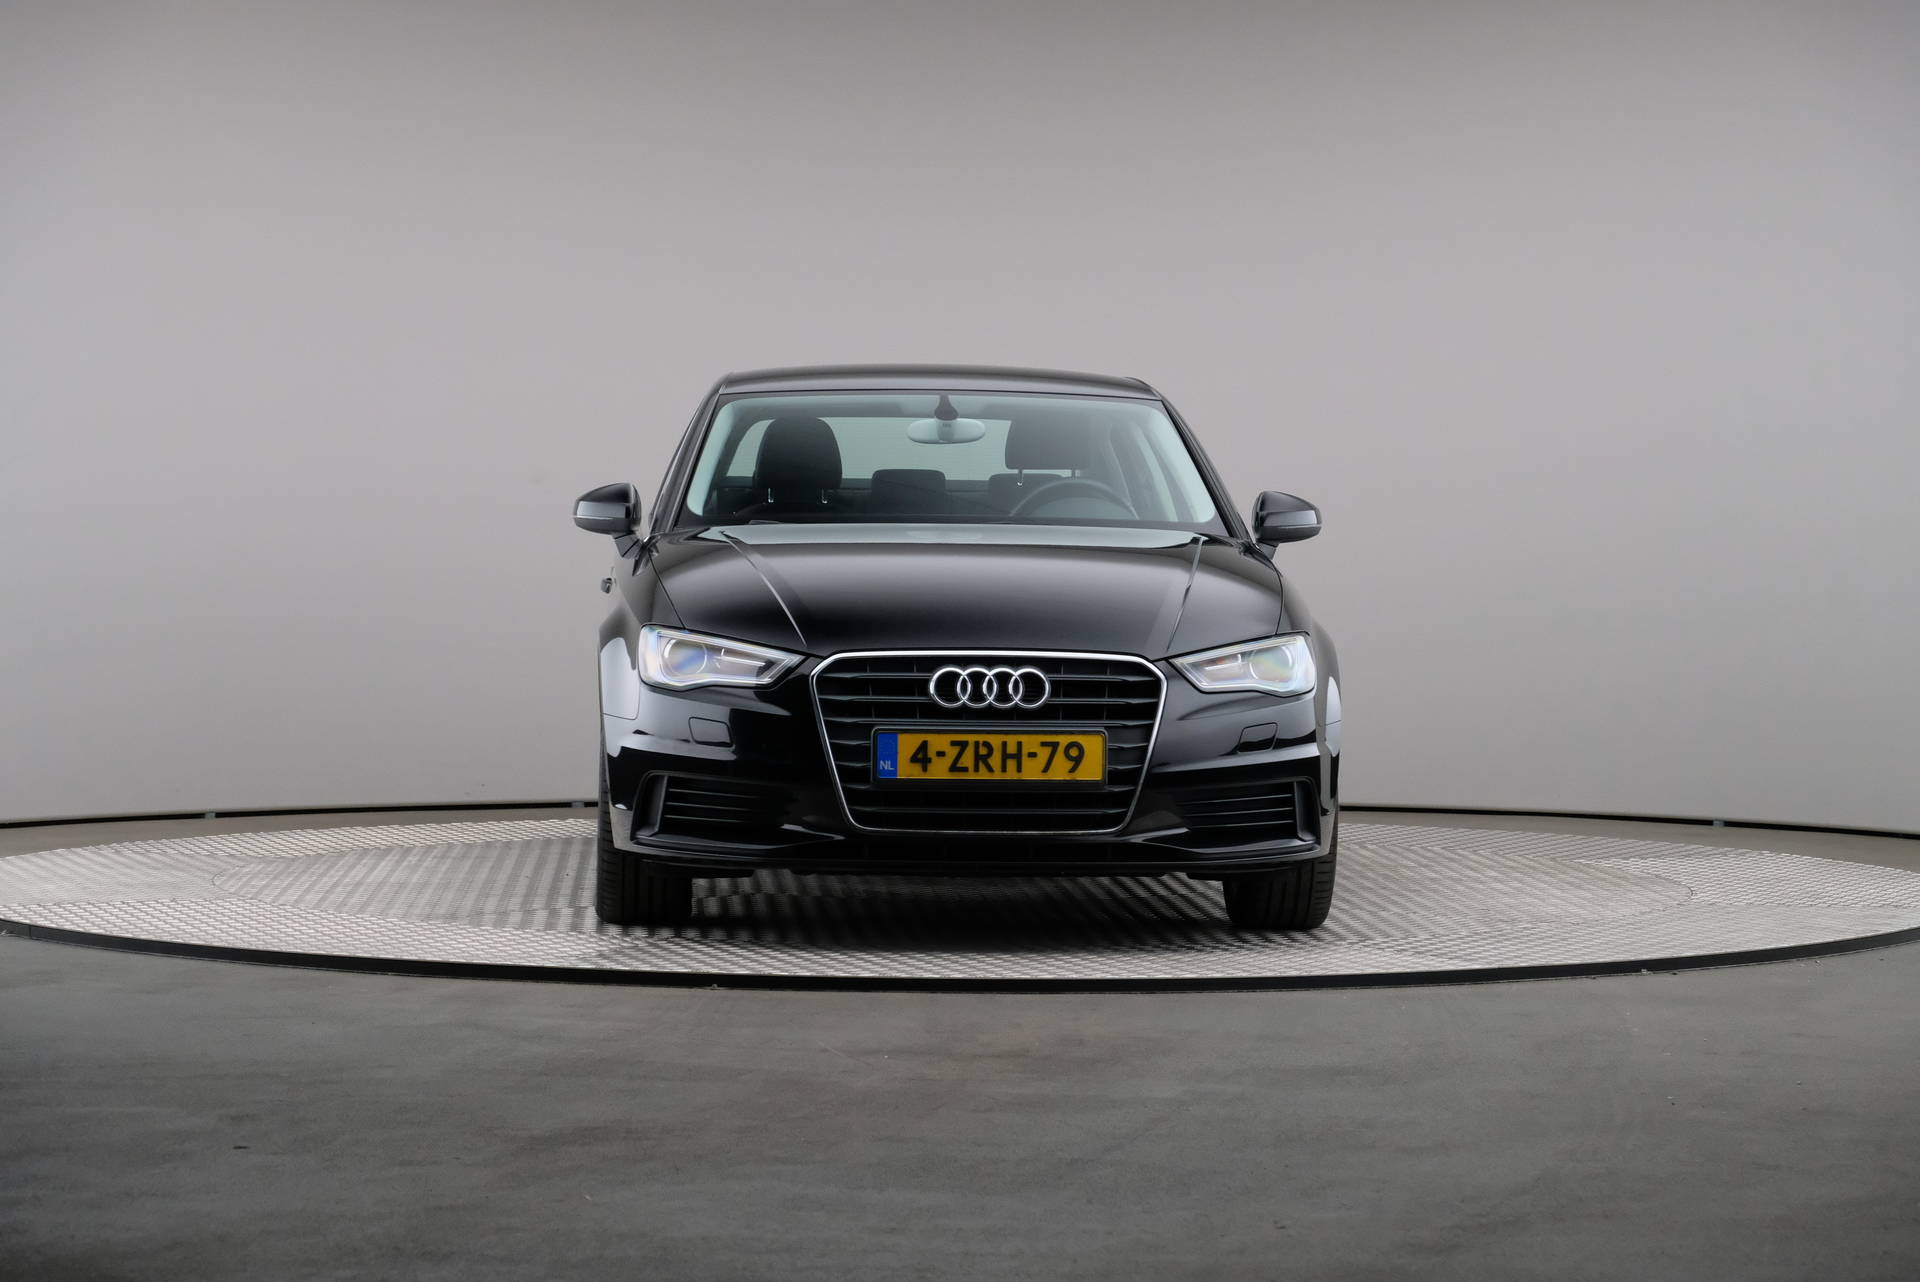 Audi A3 Limousine 1.6 TDI Attraction Pro Line Plus, Navigatie, Xenon, 360-image32